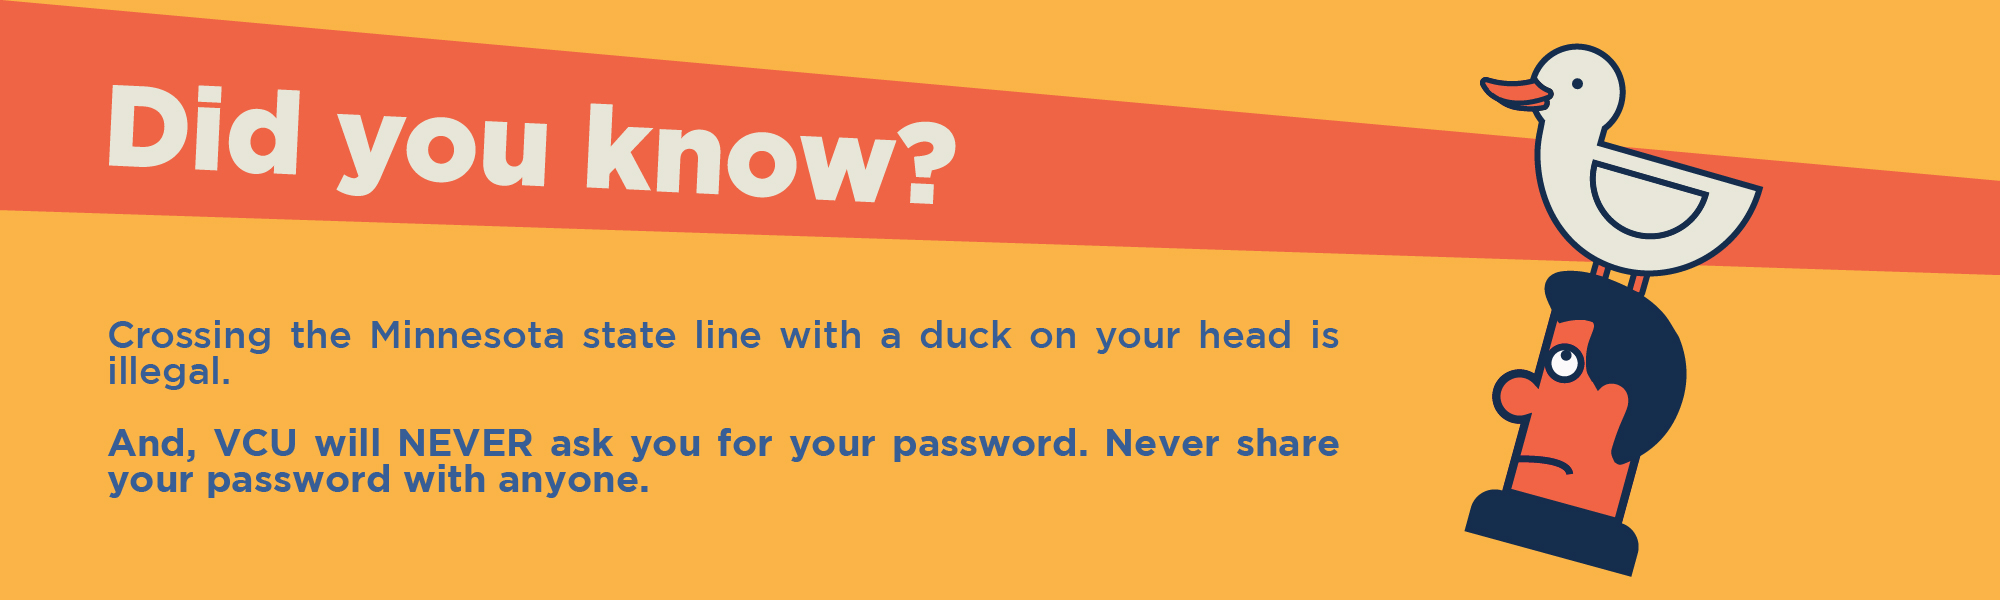 Did you know? Crossing the Minnesota State line with a duck on your head is illegal. And, VCU will never ask you for your password. Never share your password with anyone.